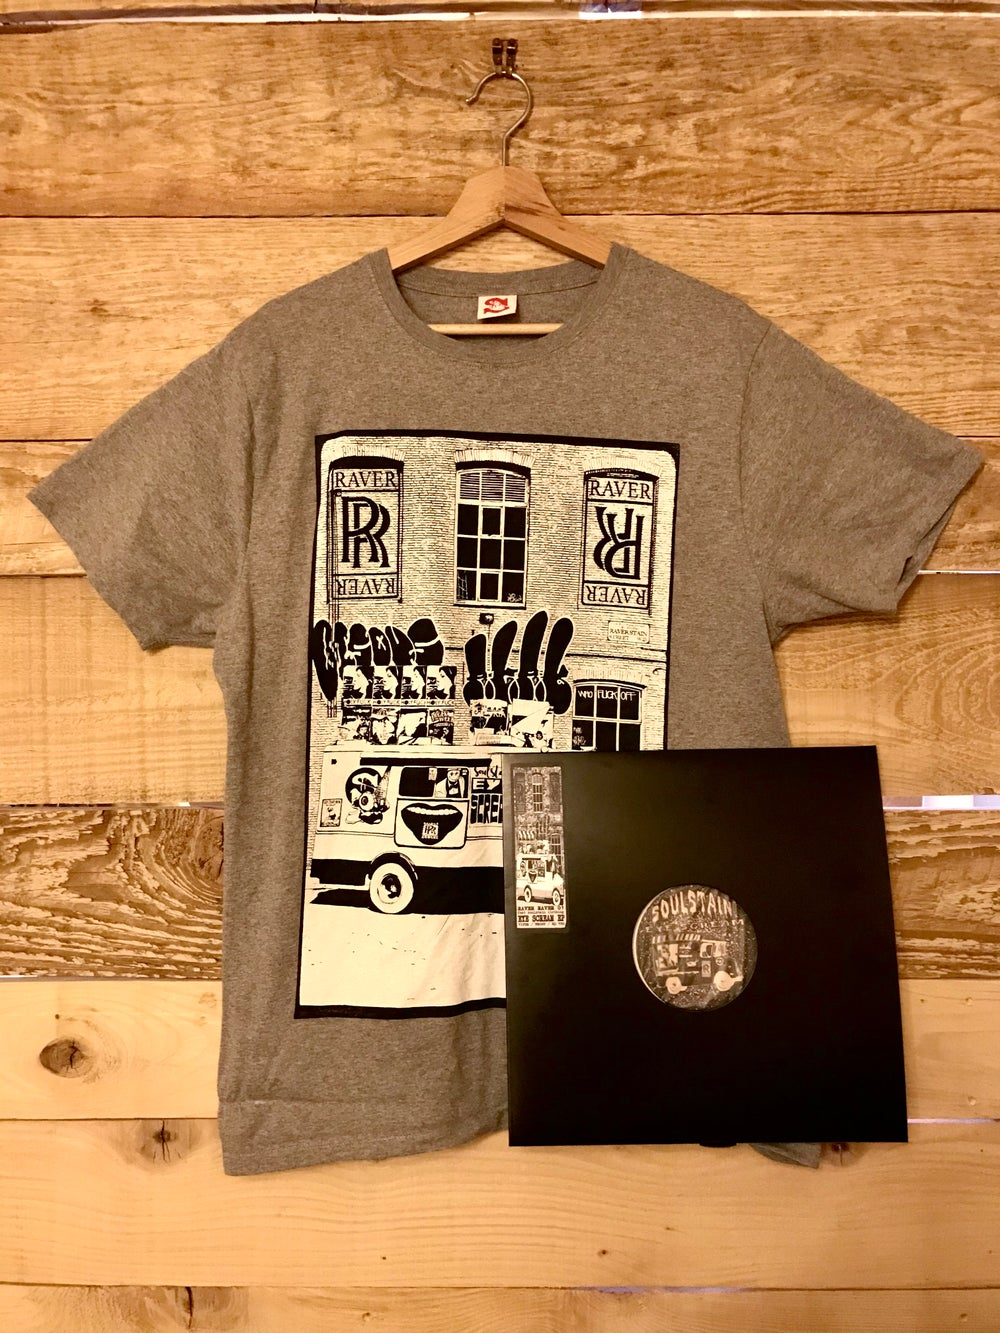 Soulstain X Raver Raver Pack (Vinyle + Limited T-Shirt)